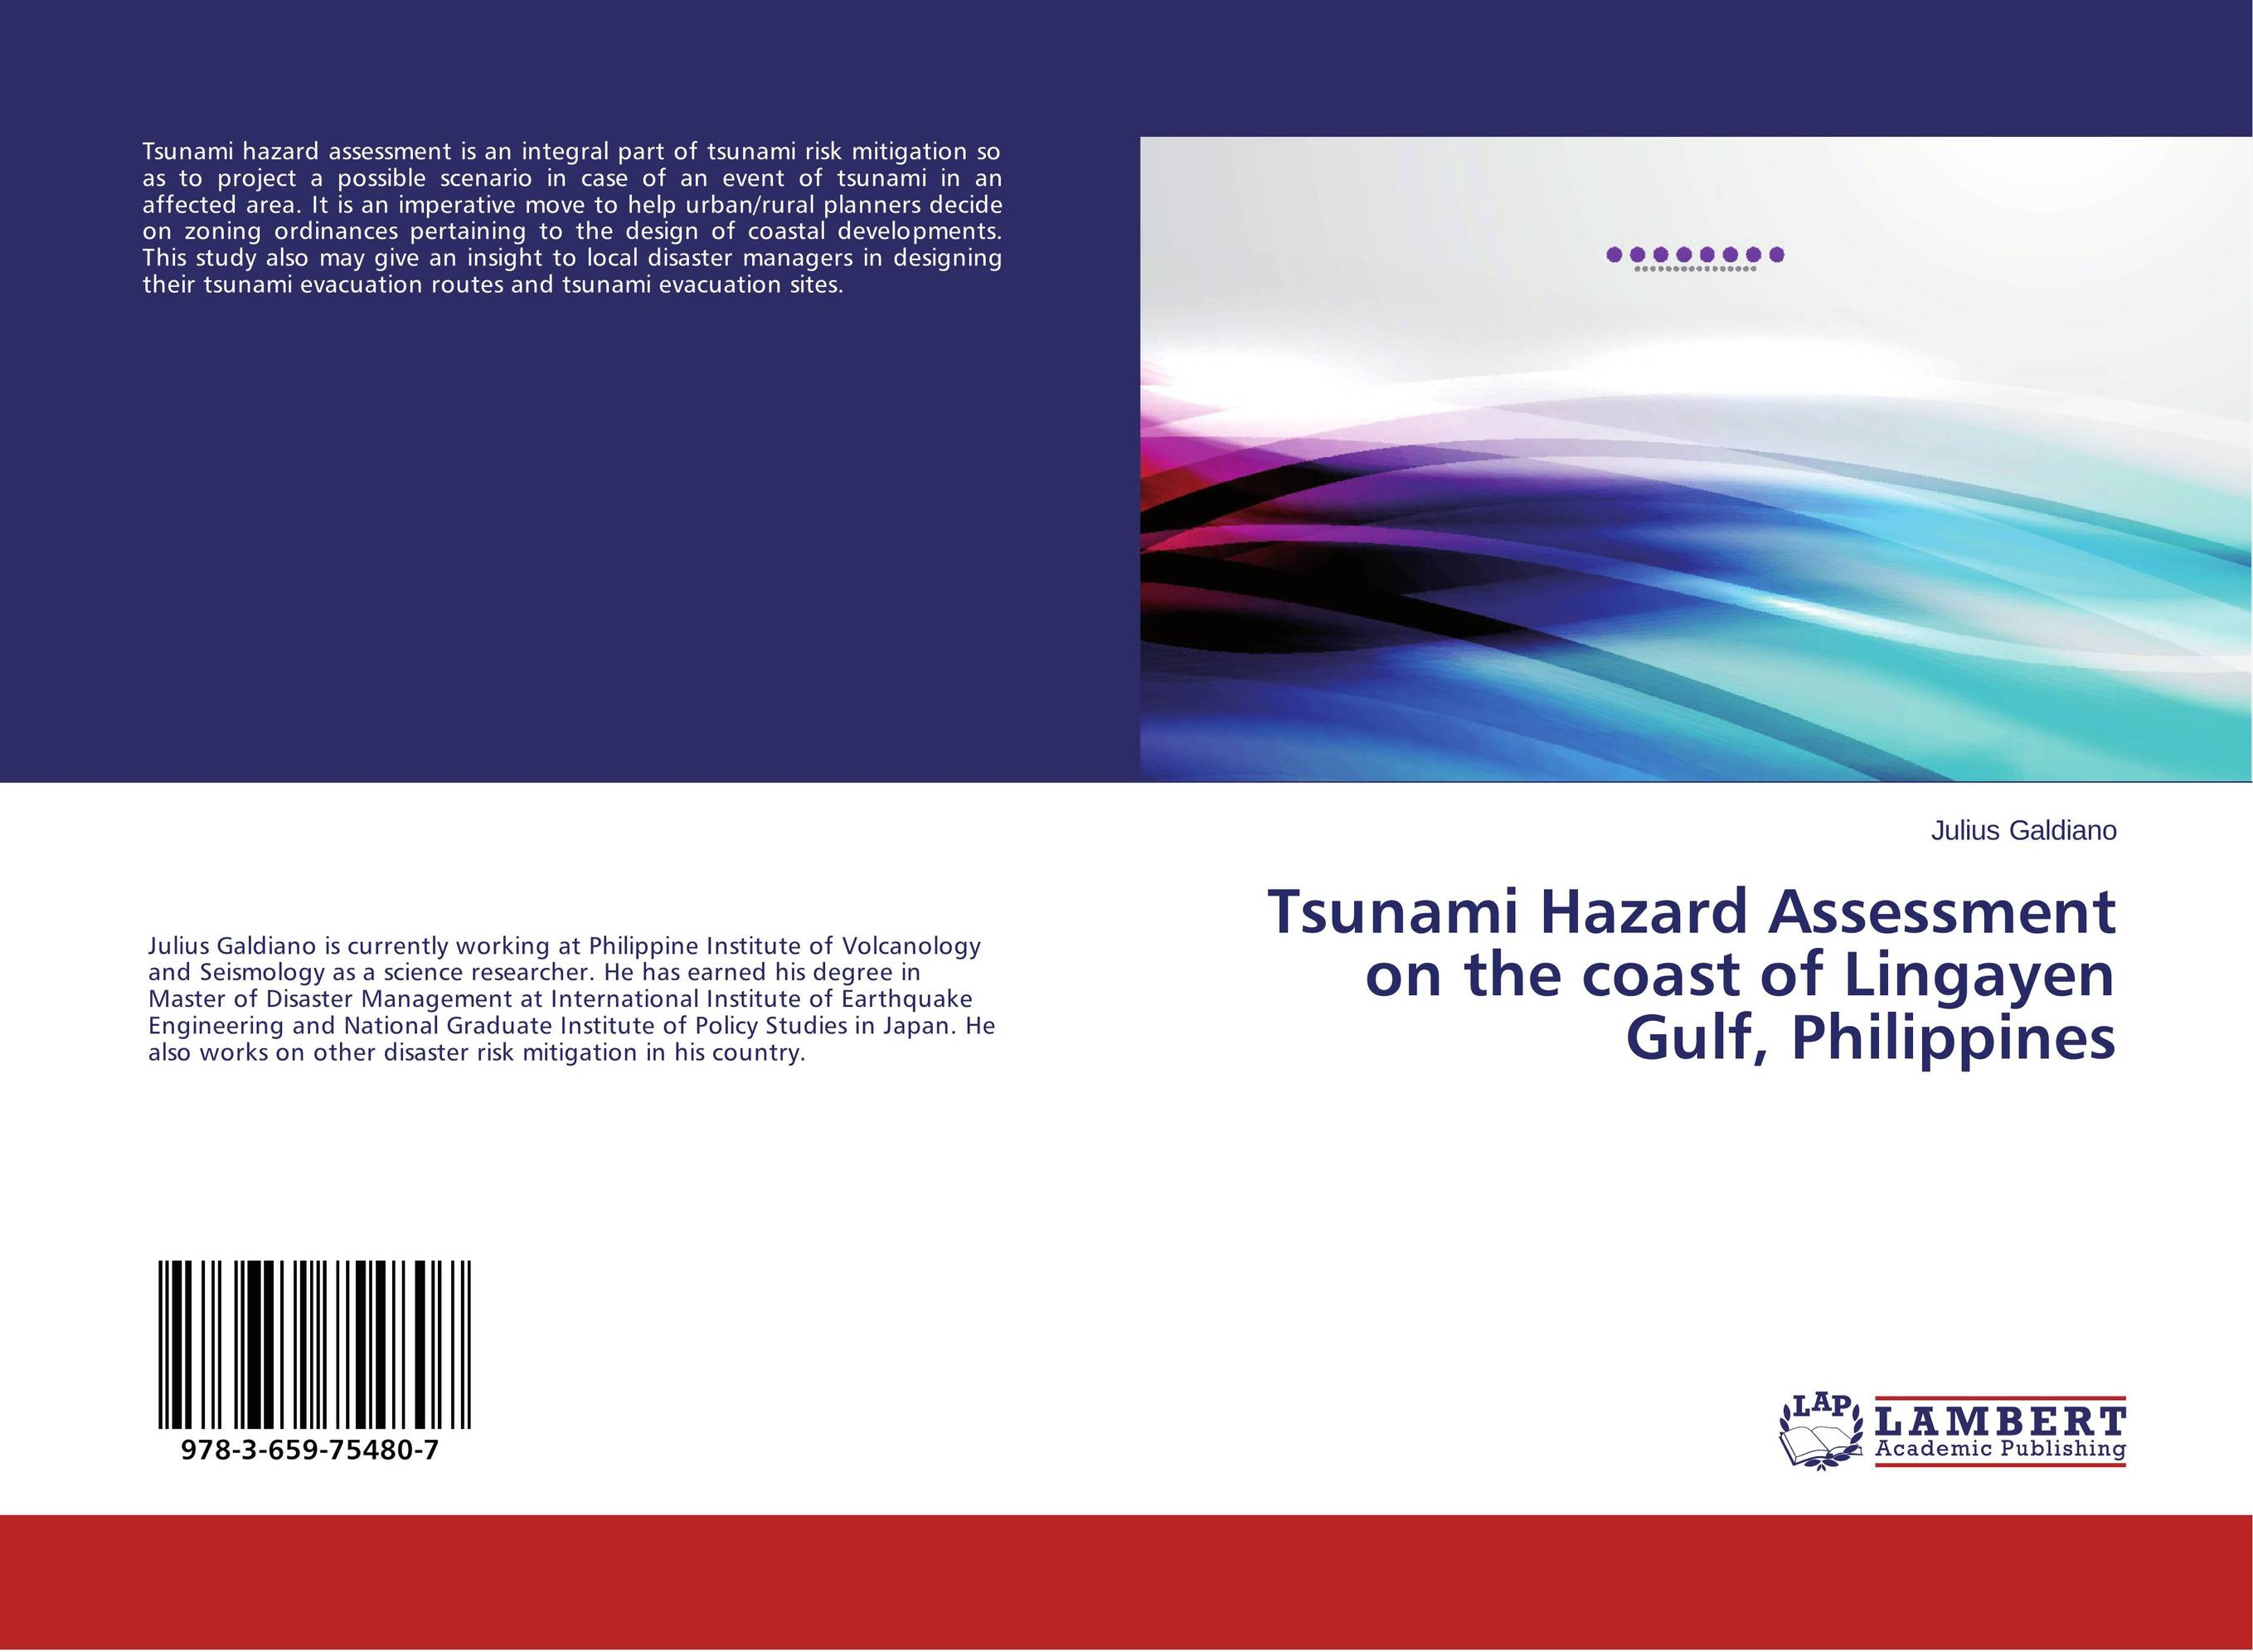 Tsunami Hazard Assessment on the coast of Lingayen Gulf, Philippines an area of darkness